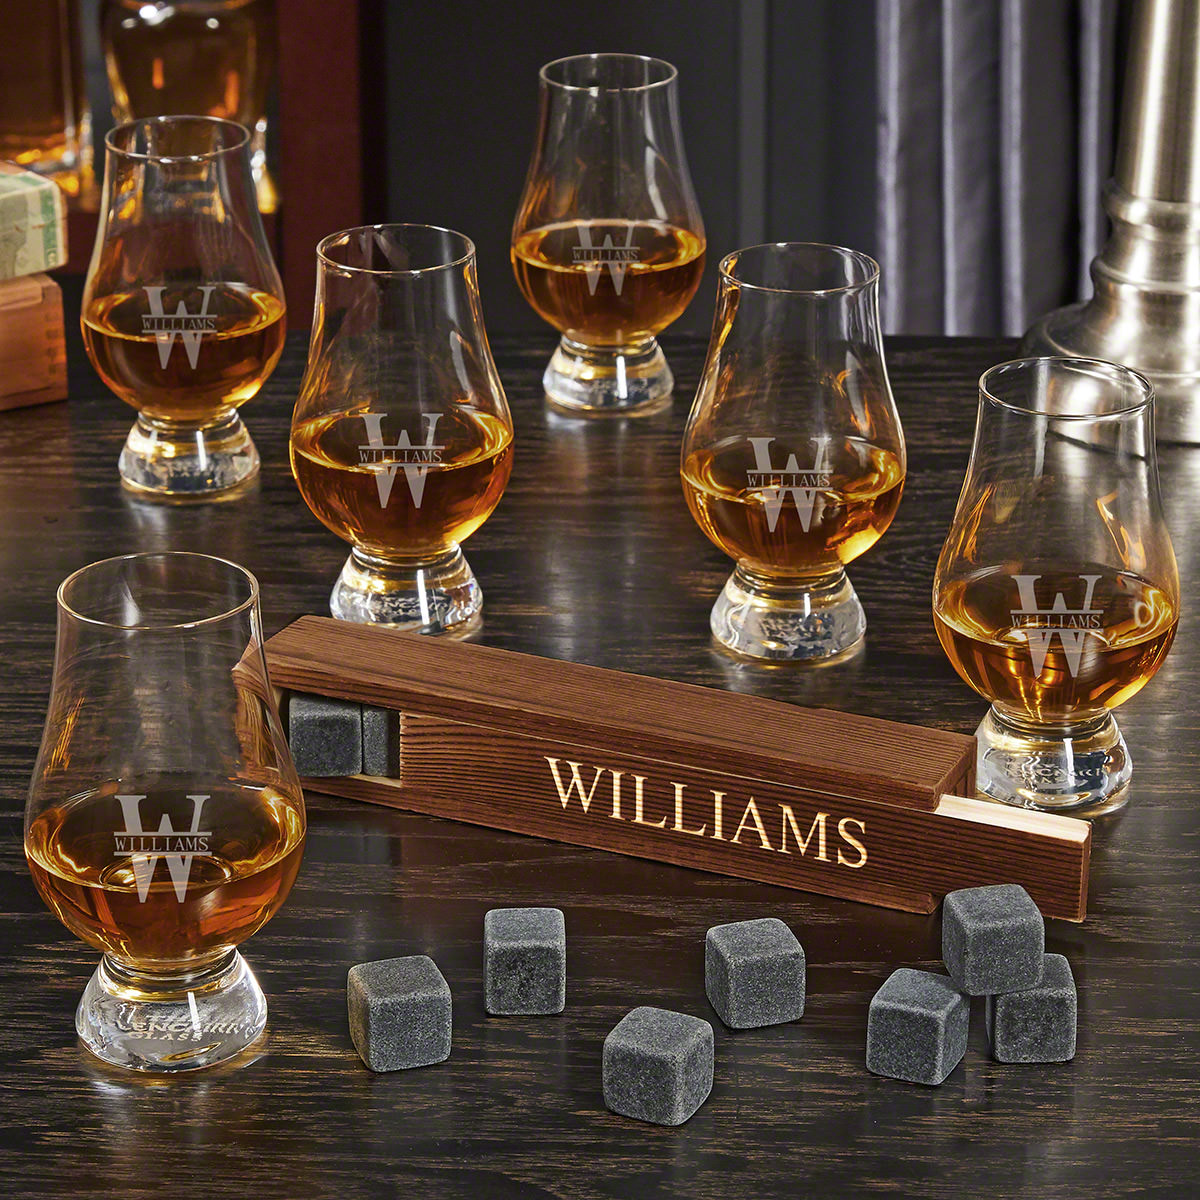 Oakmont Engraved Whiskey Stone Set with 6 Glencairn Whiskey Tasting Glasses